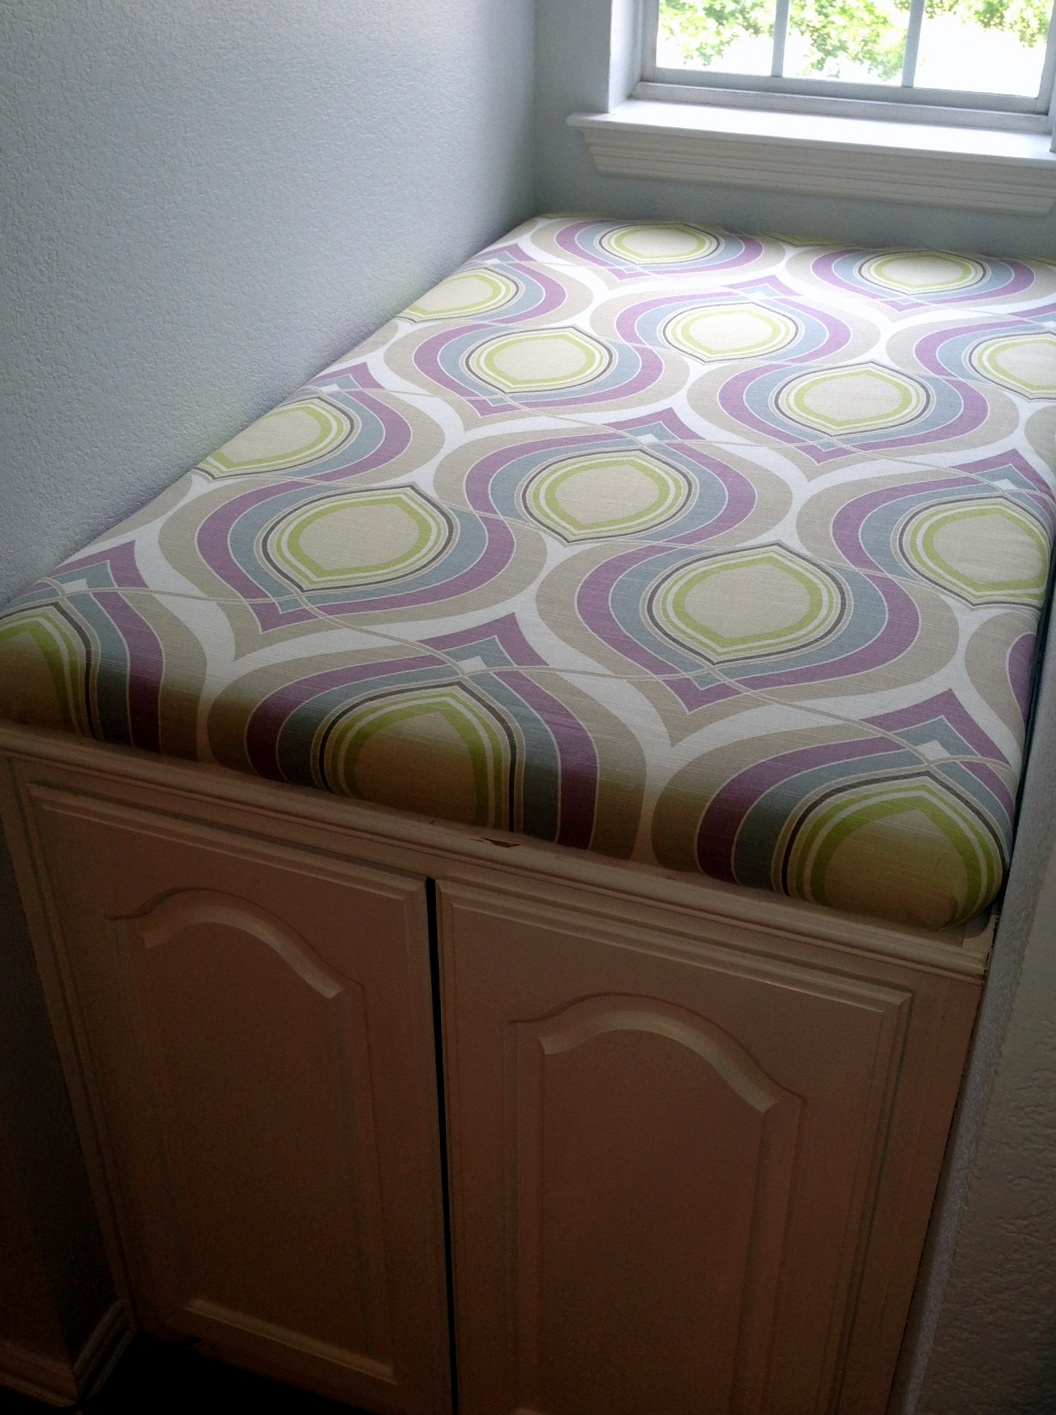 Diy Window Seat Cushion No Sew